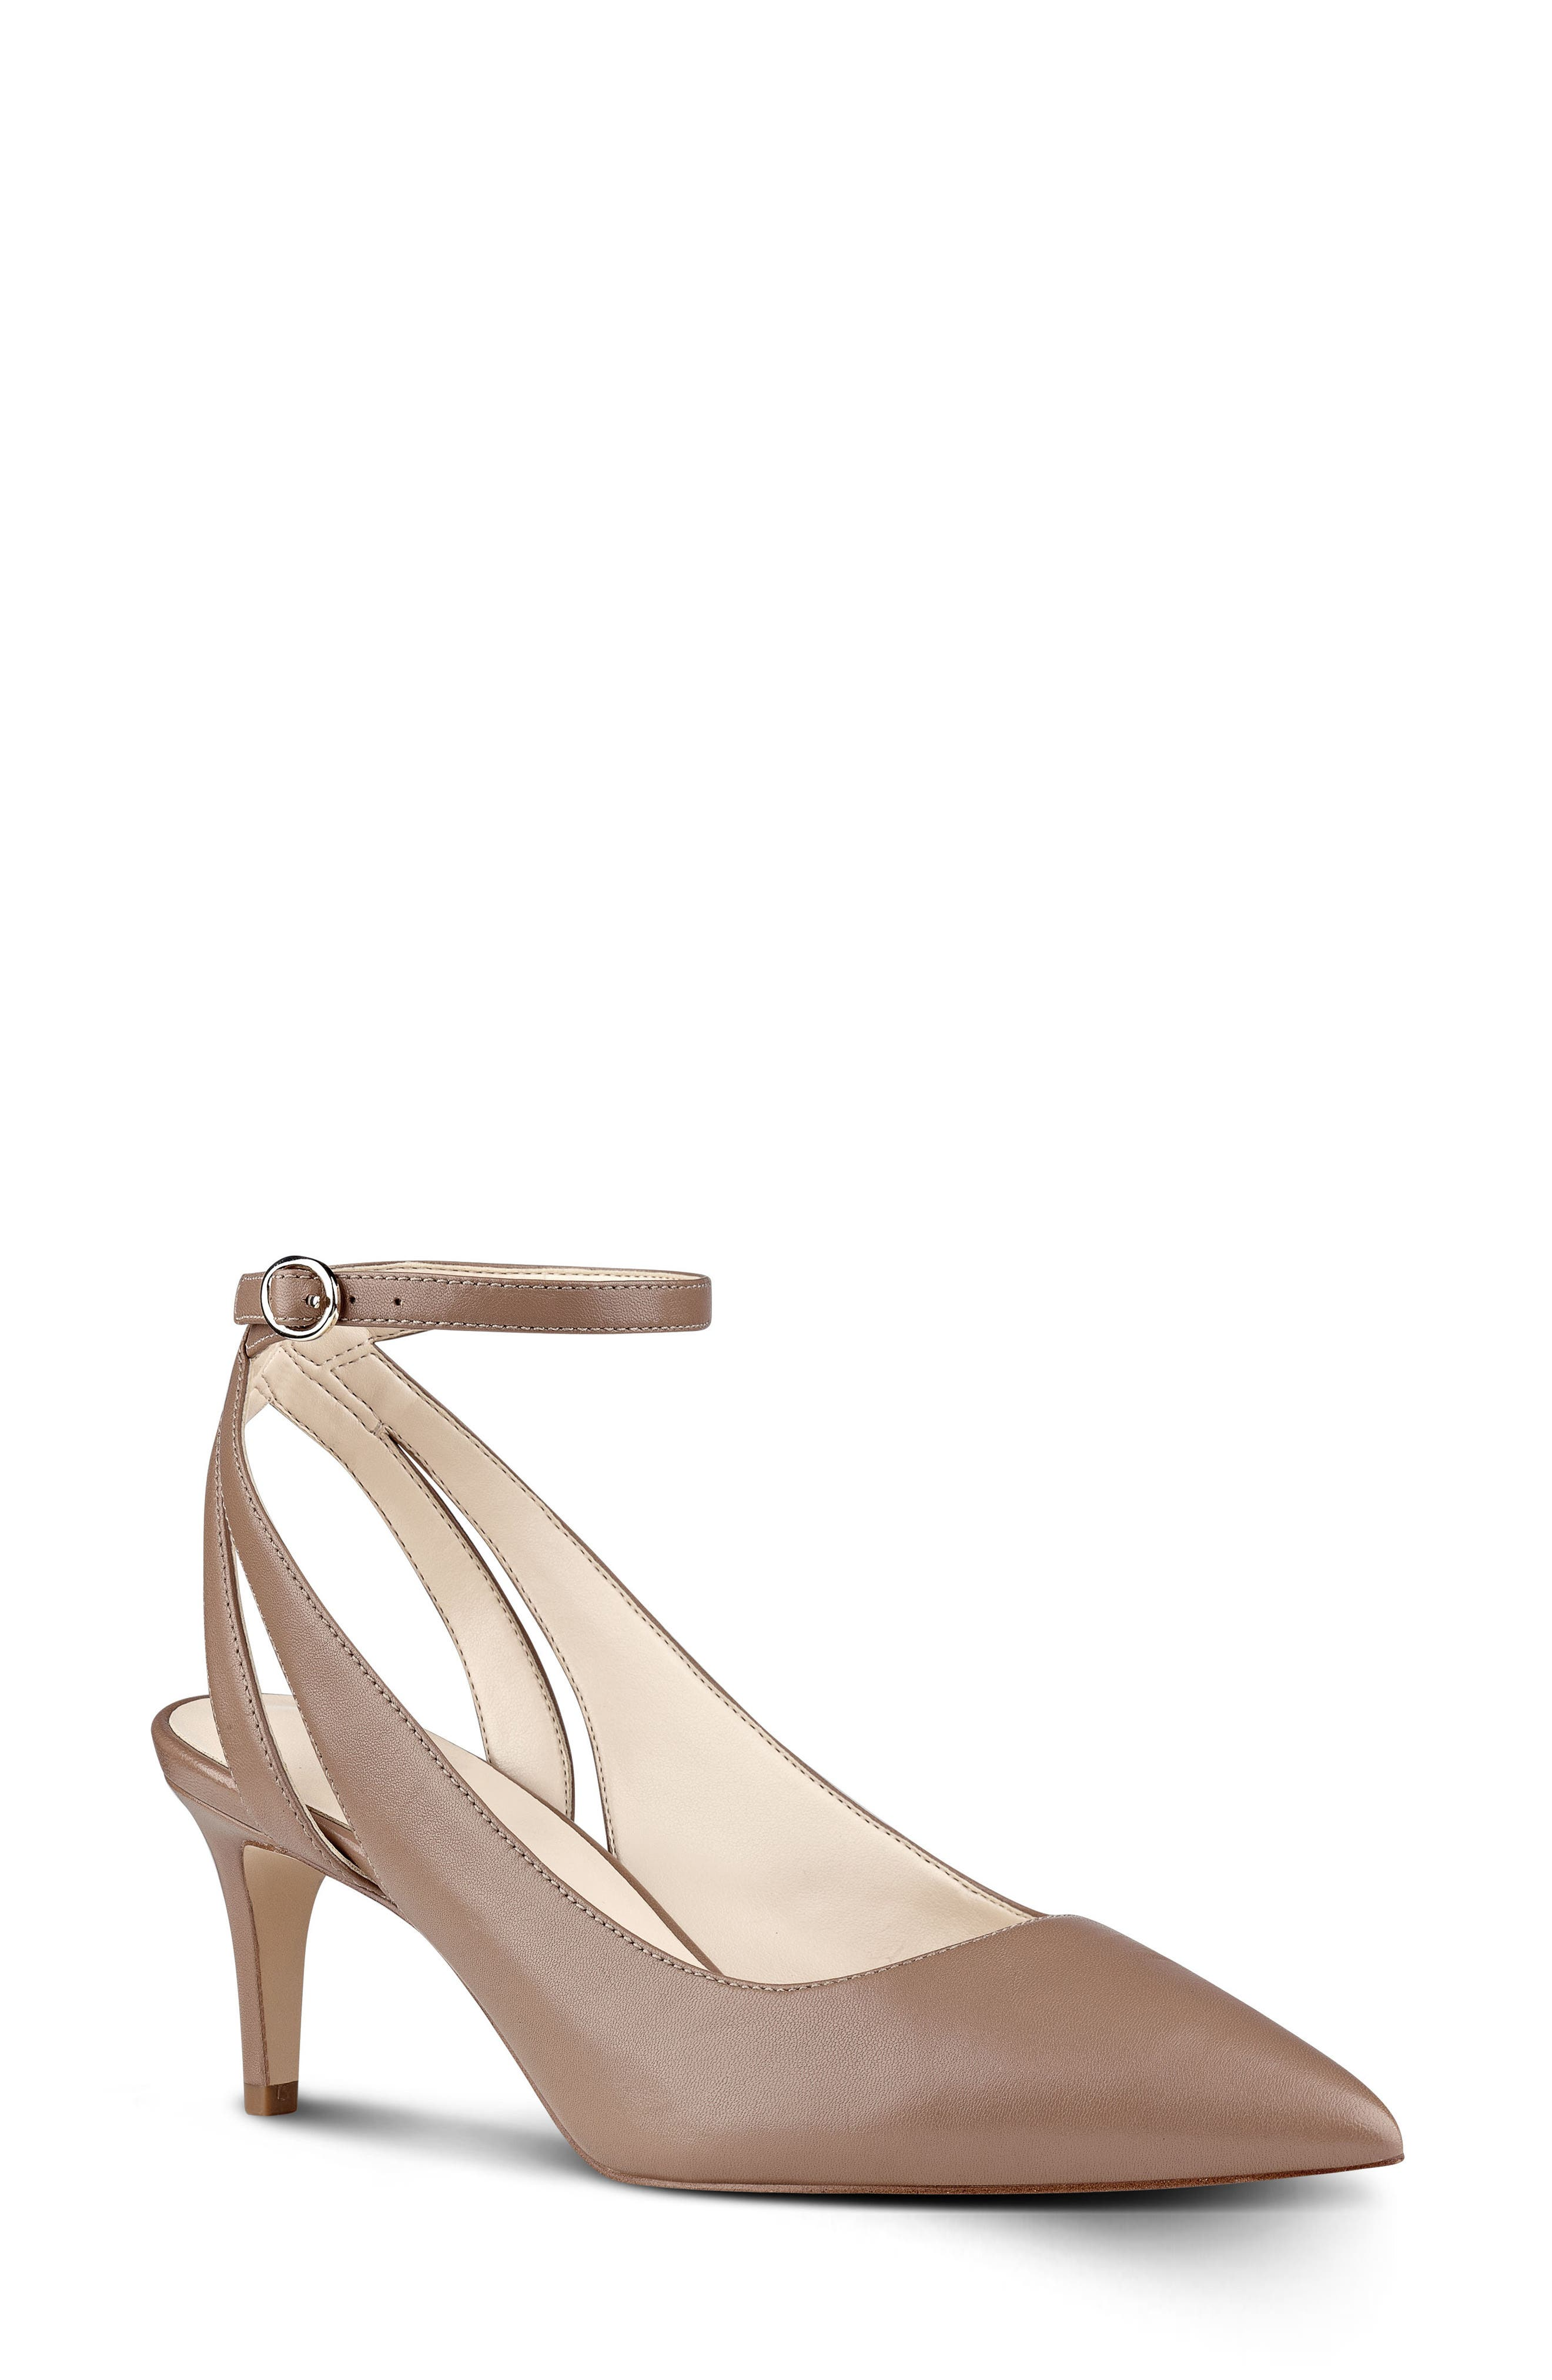 Main Image - Nine West Shawn Ankle Strap Pump